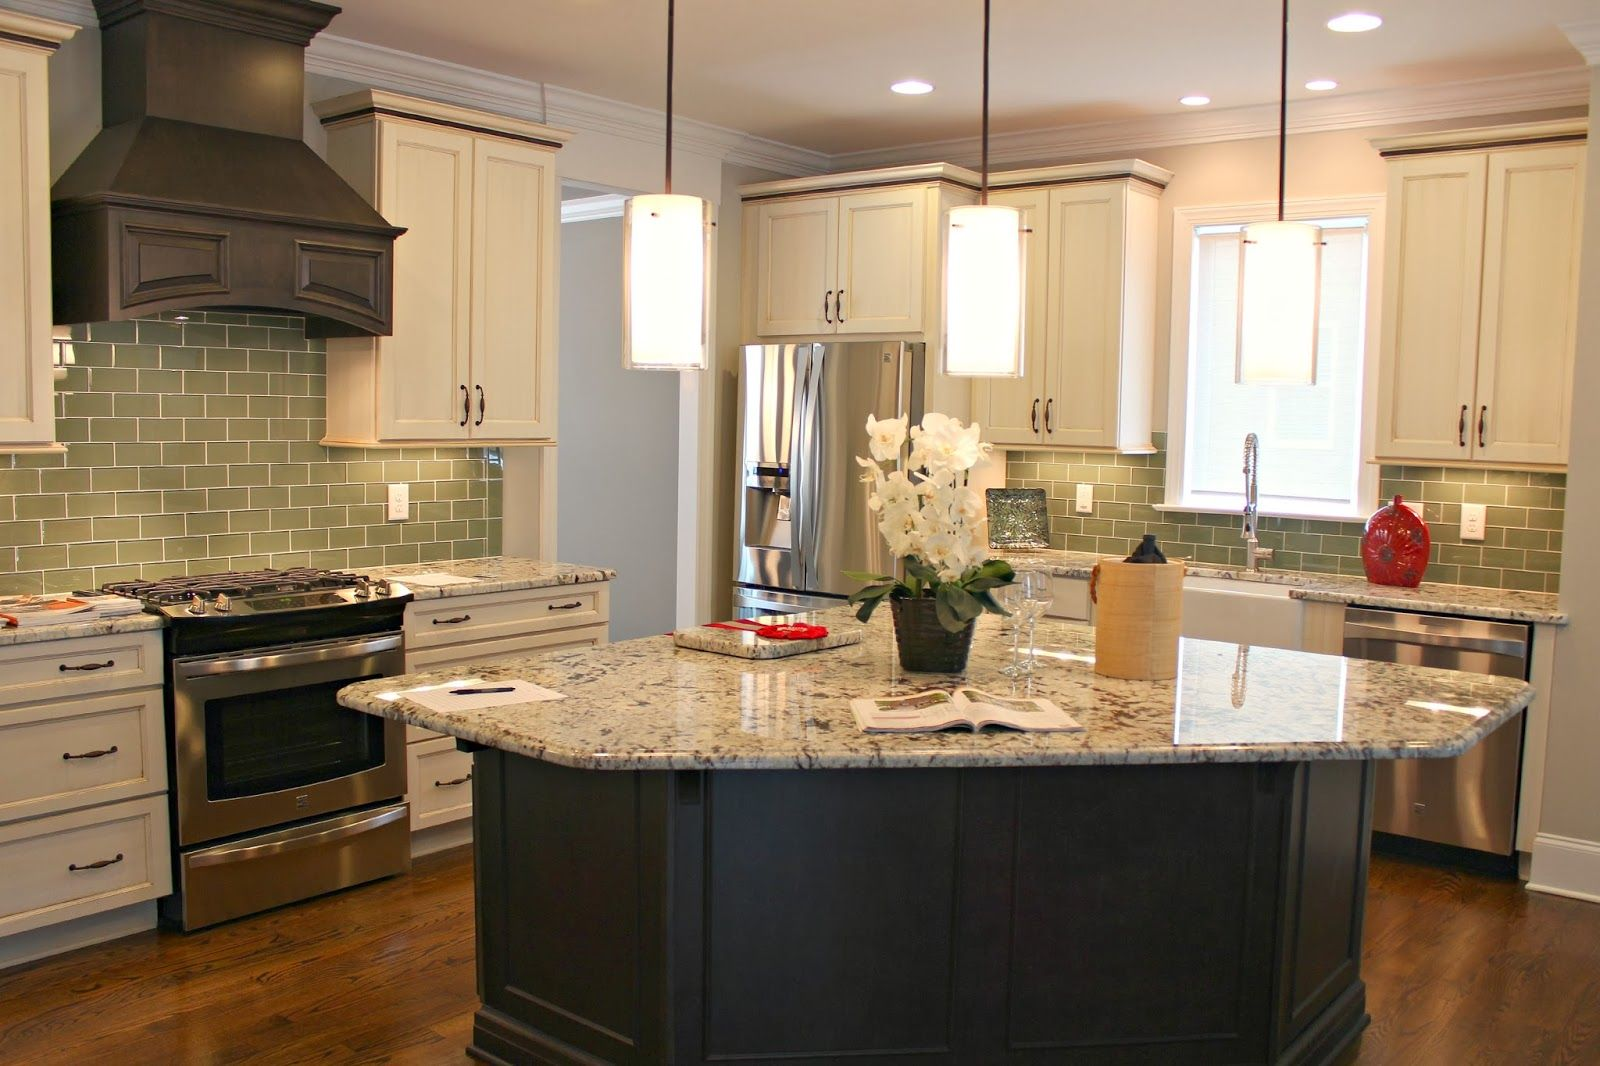 triangular kitchen island might come to this to get the size i want in the space we have on kitchen island ideas in small kitchen id=42389